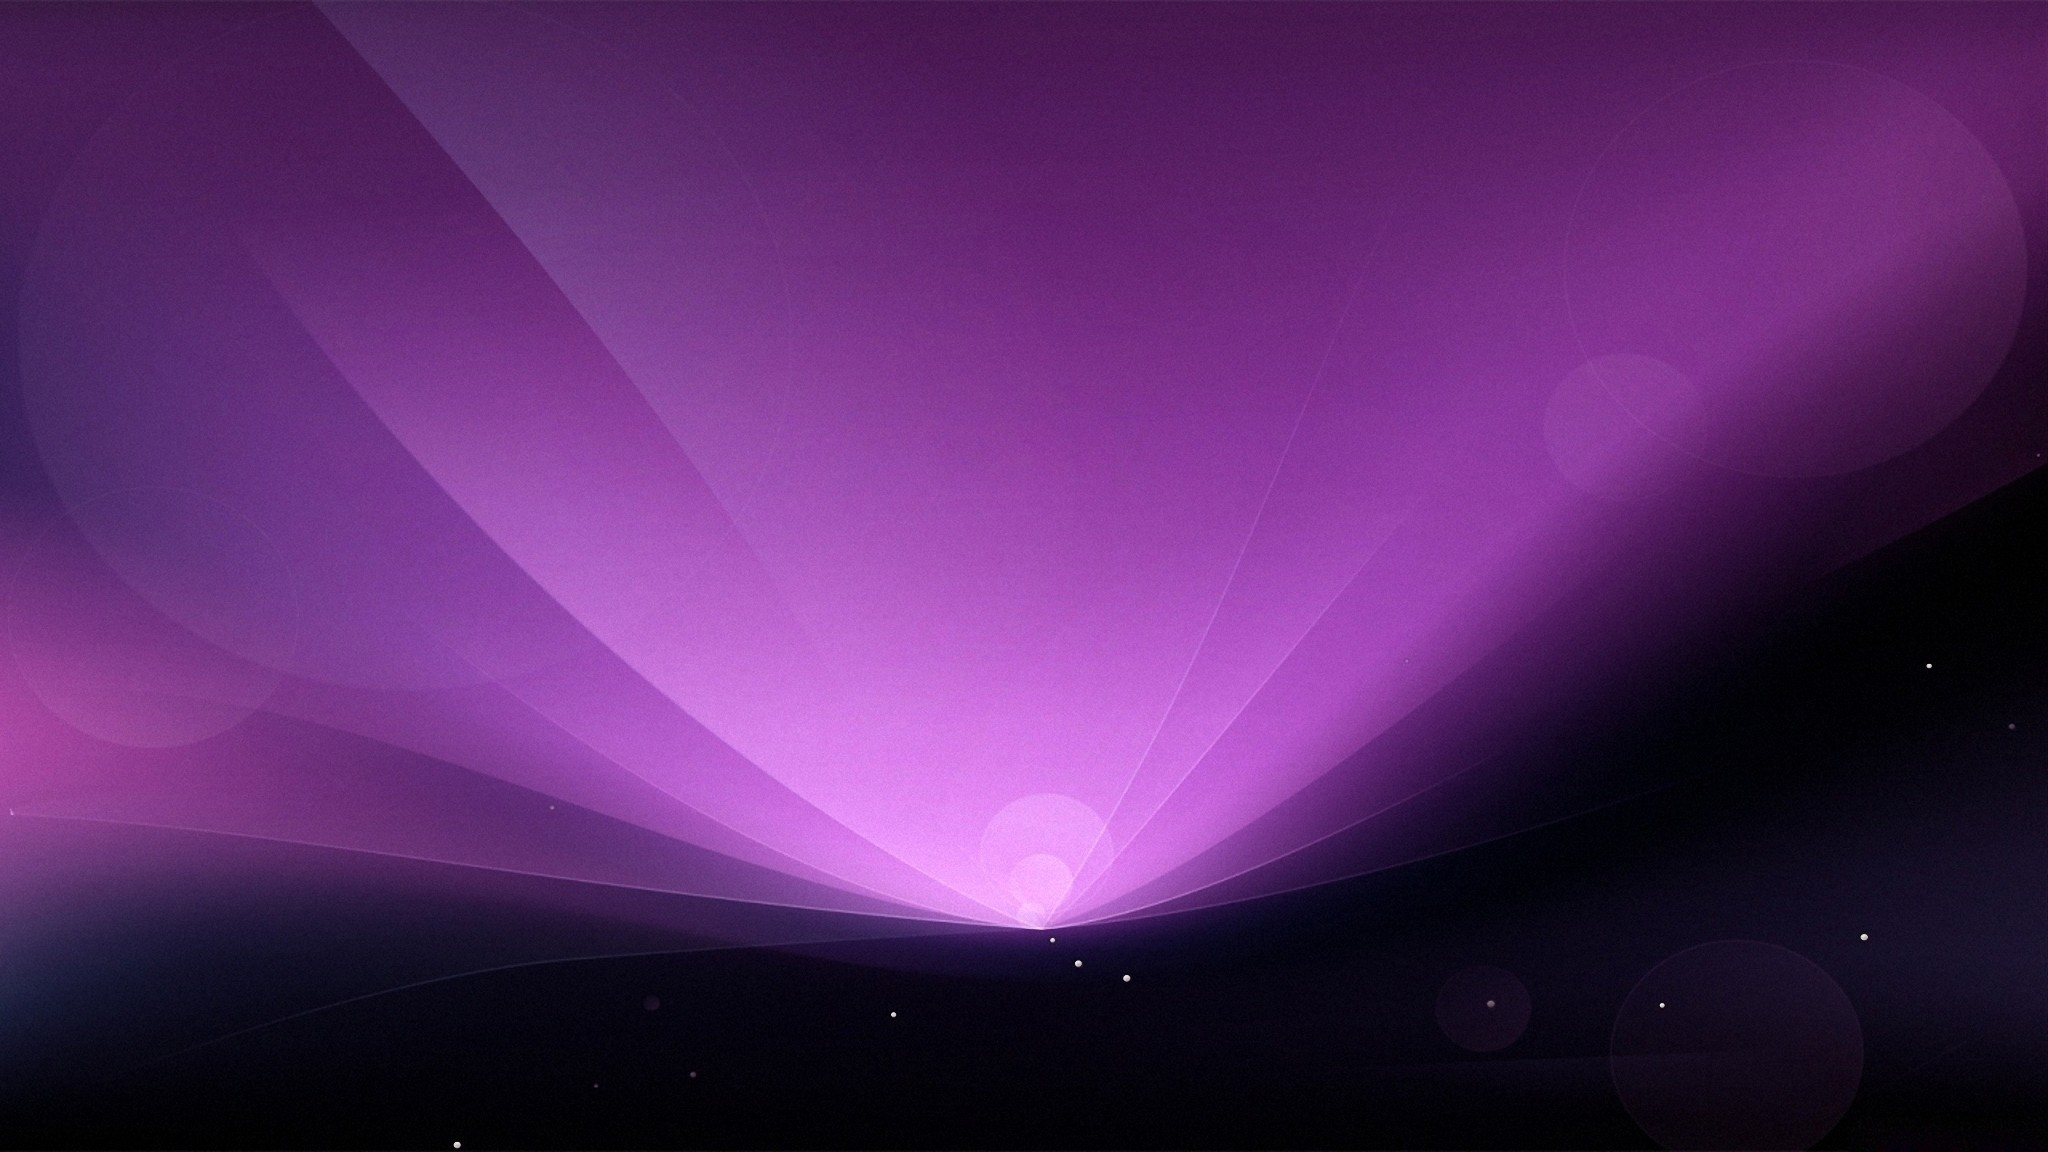 Mac Os X Wallpapers Hd 40263 Hd Wallpapers Background 2048x1152